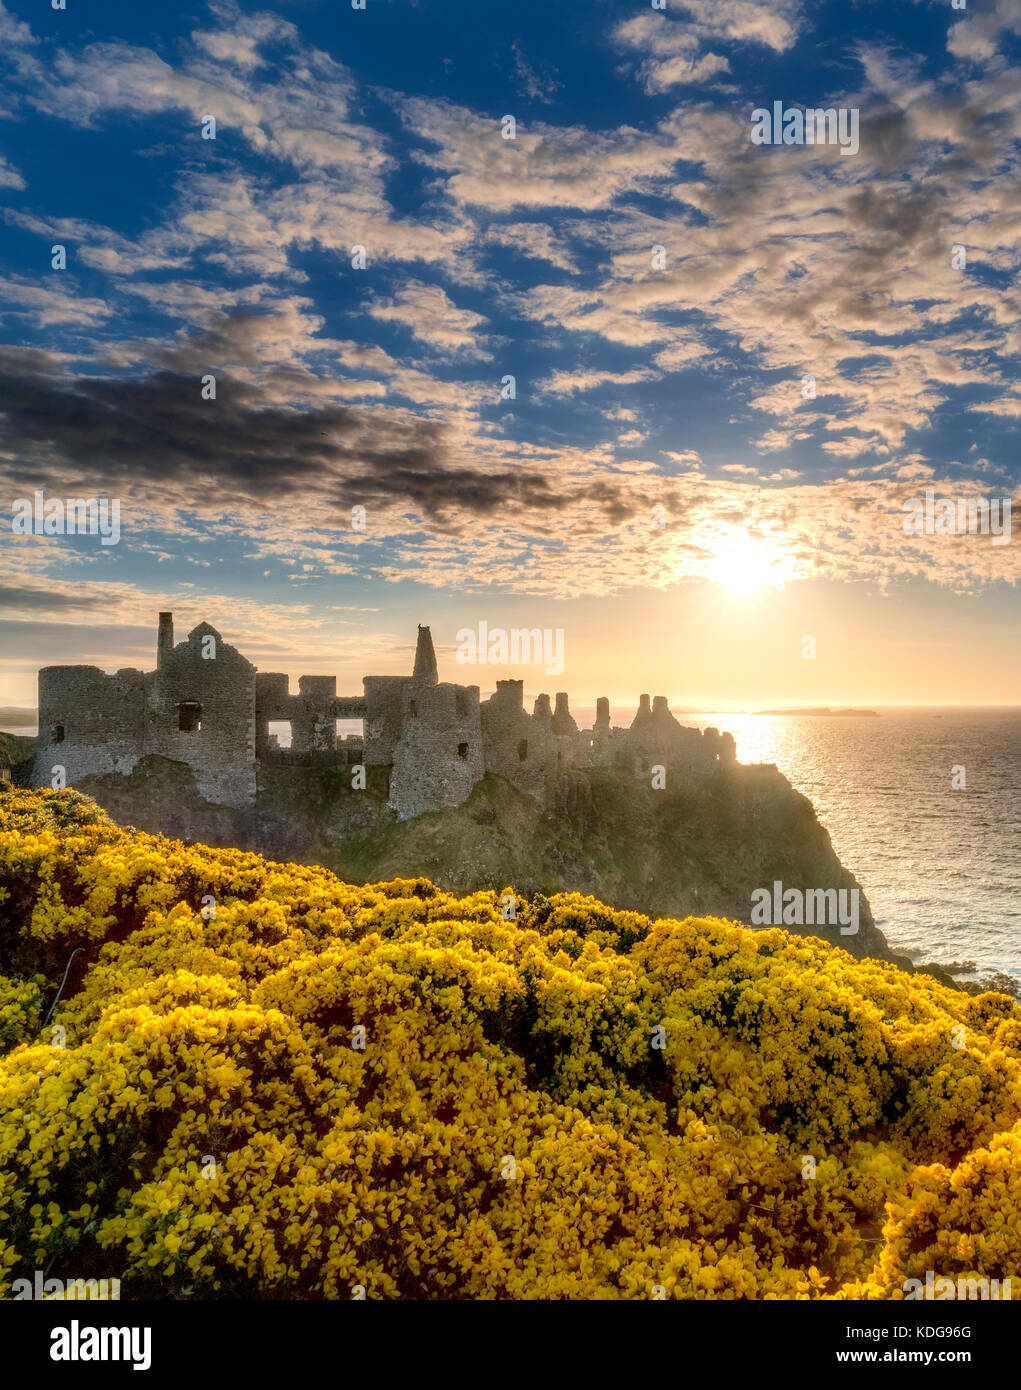 Dunluce Castle,at sunset with blooming gorse. Northern Ireland. - Stock Image